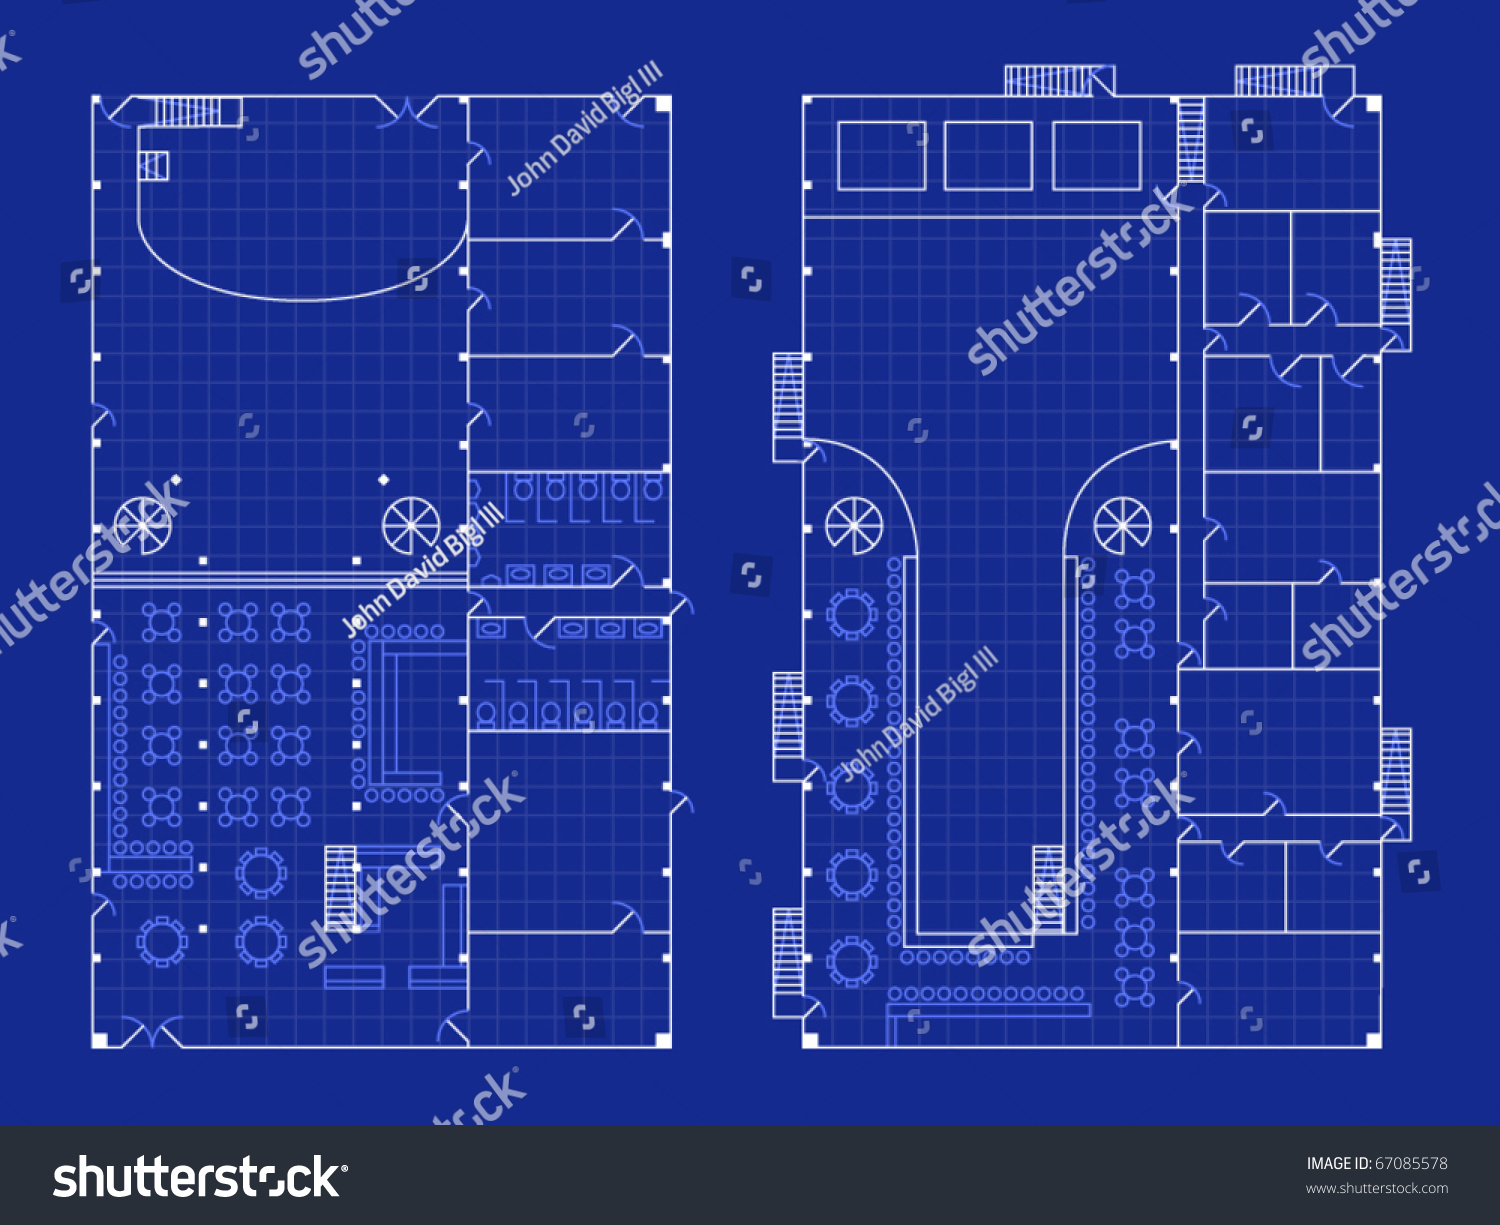 Floorplan Nightclub Stage Bar Blueprint Style Stock Vector